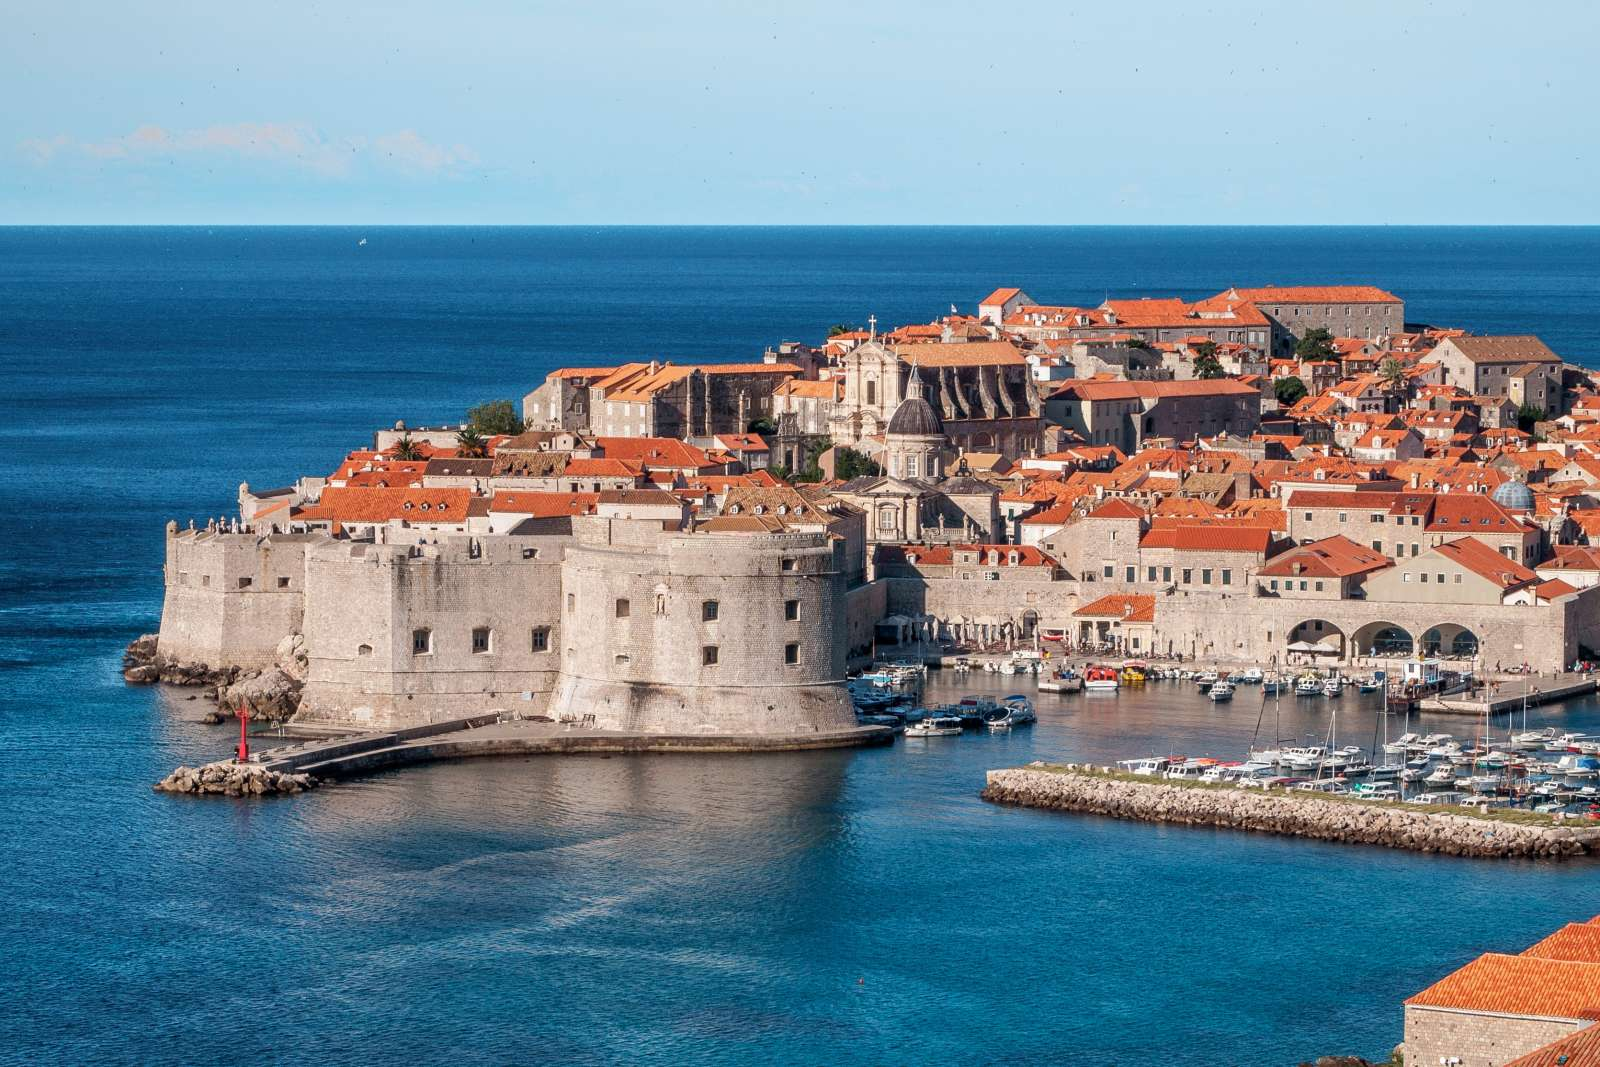 Dubrovnik Cover Image